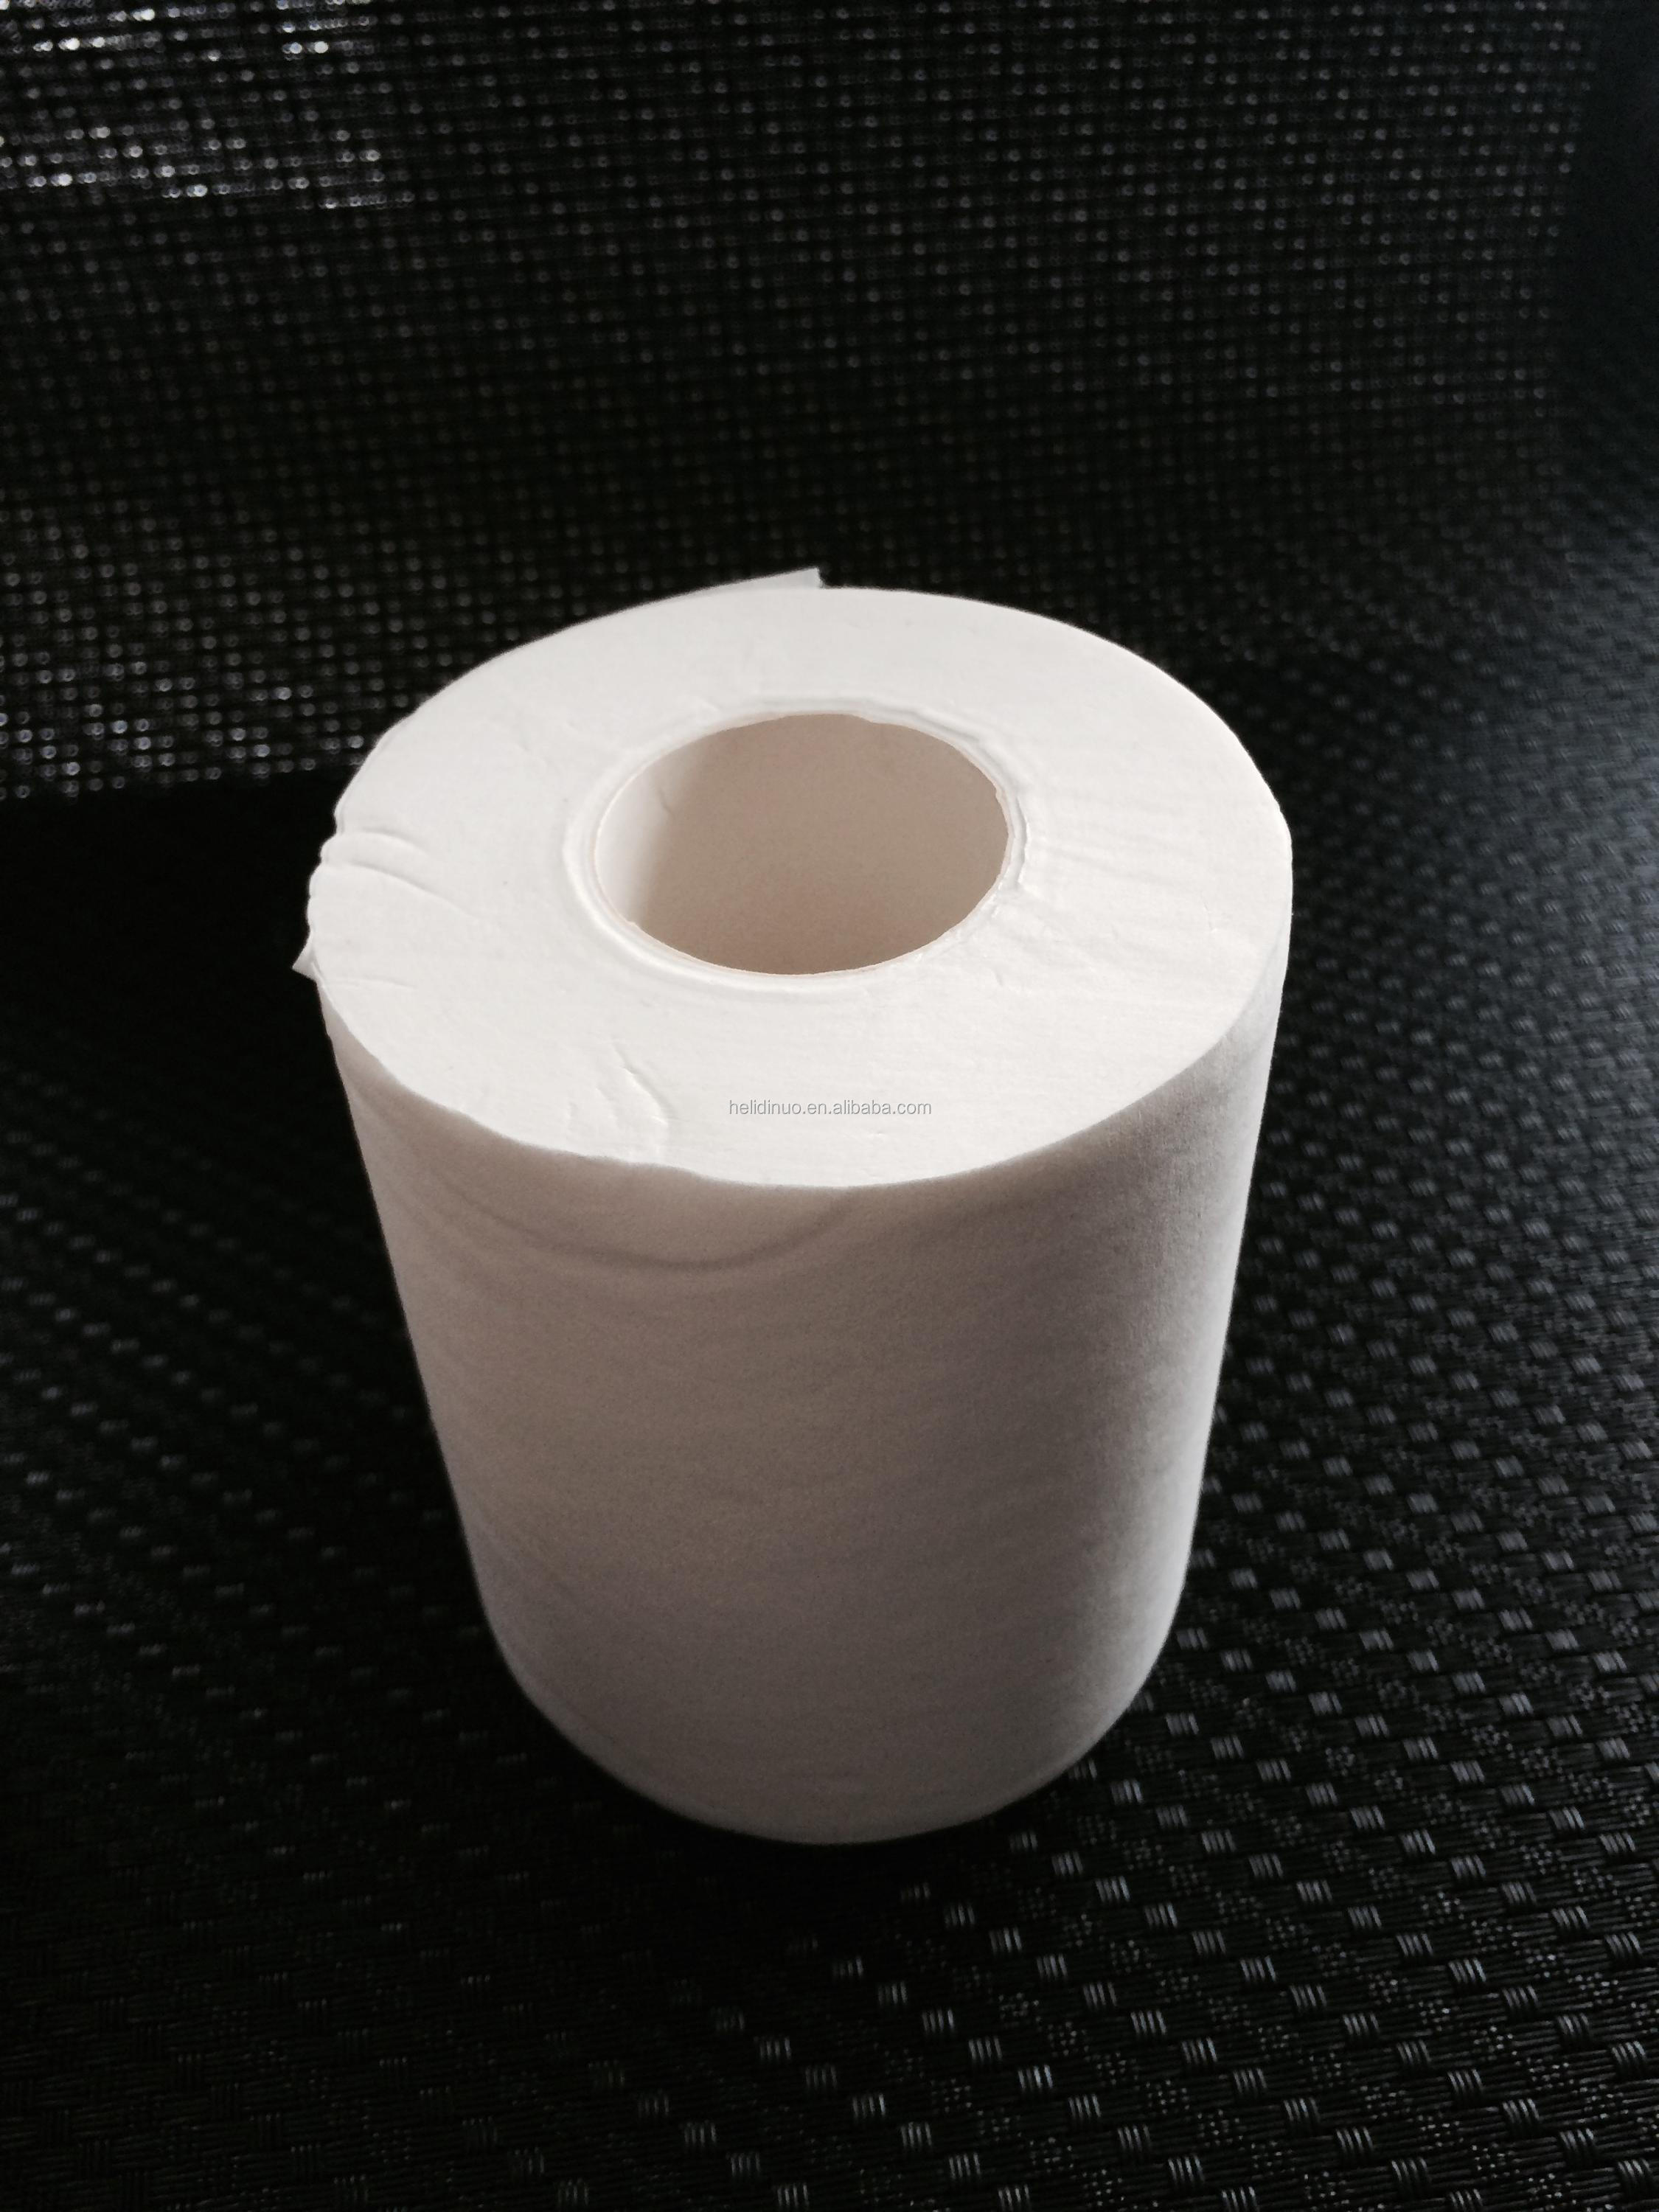 Factory direct white Toilet Paper Tissue, Virgin recycled 1 ply 2ply 3 ply Tissue Paper, Embossing Toilet Tissue